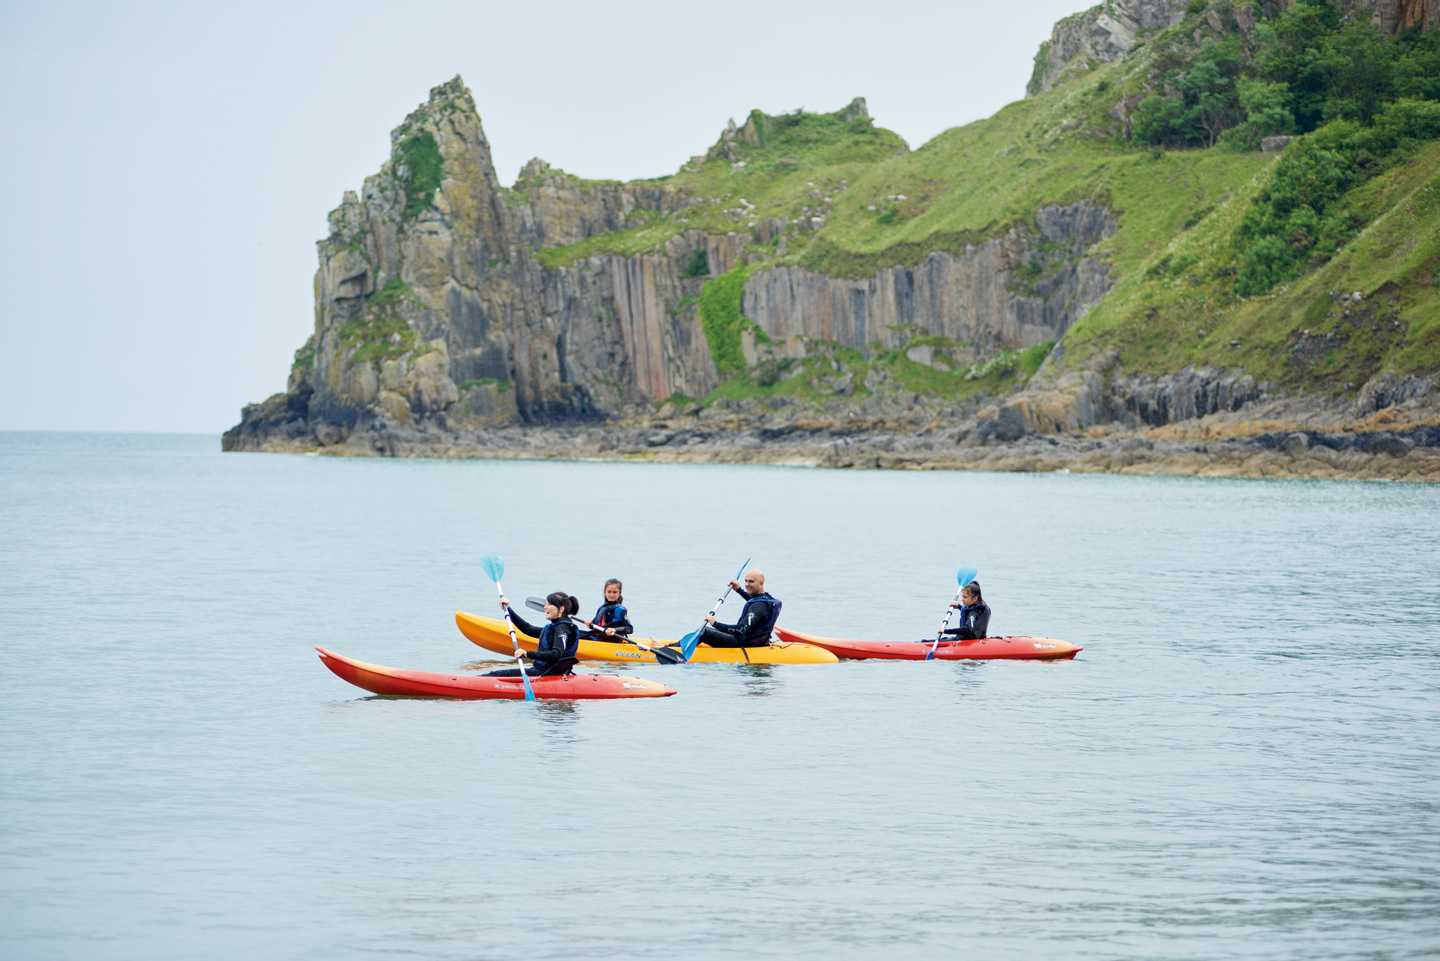 Guests kayaking in the sea at Lydstep Beach